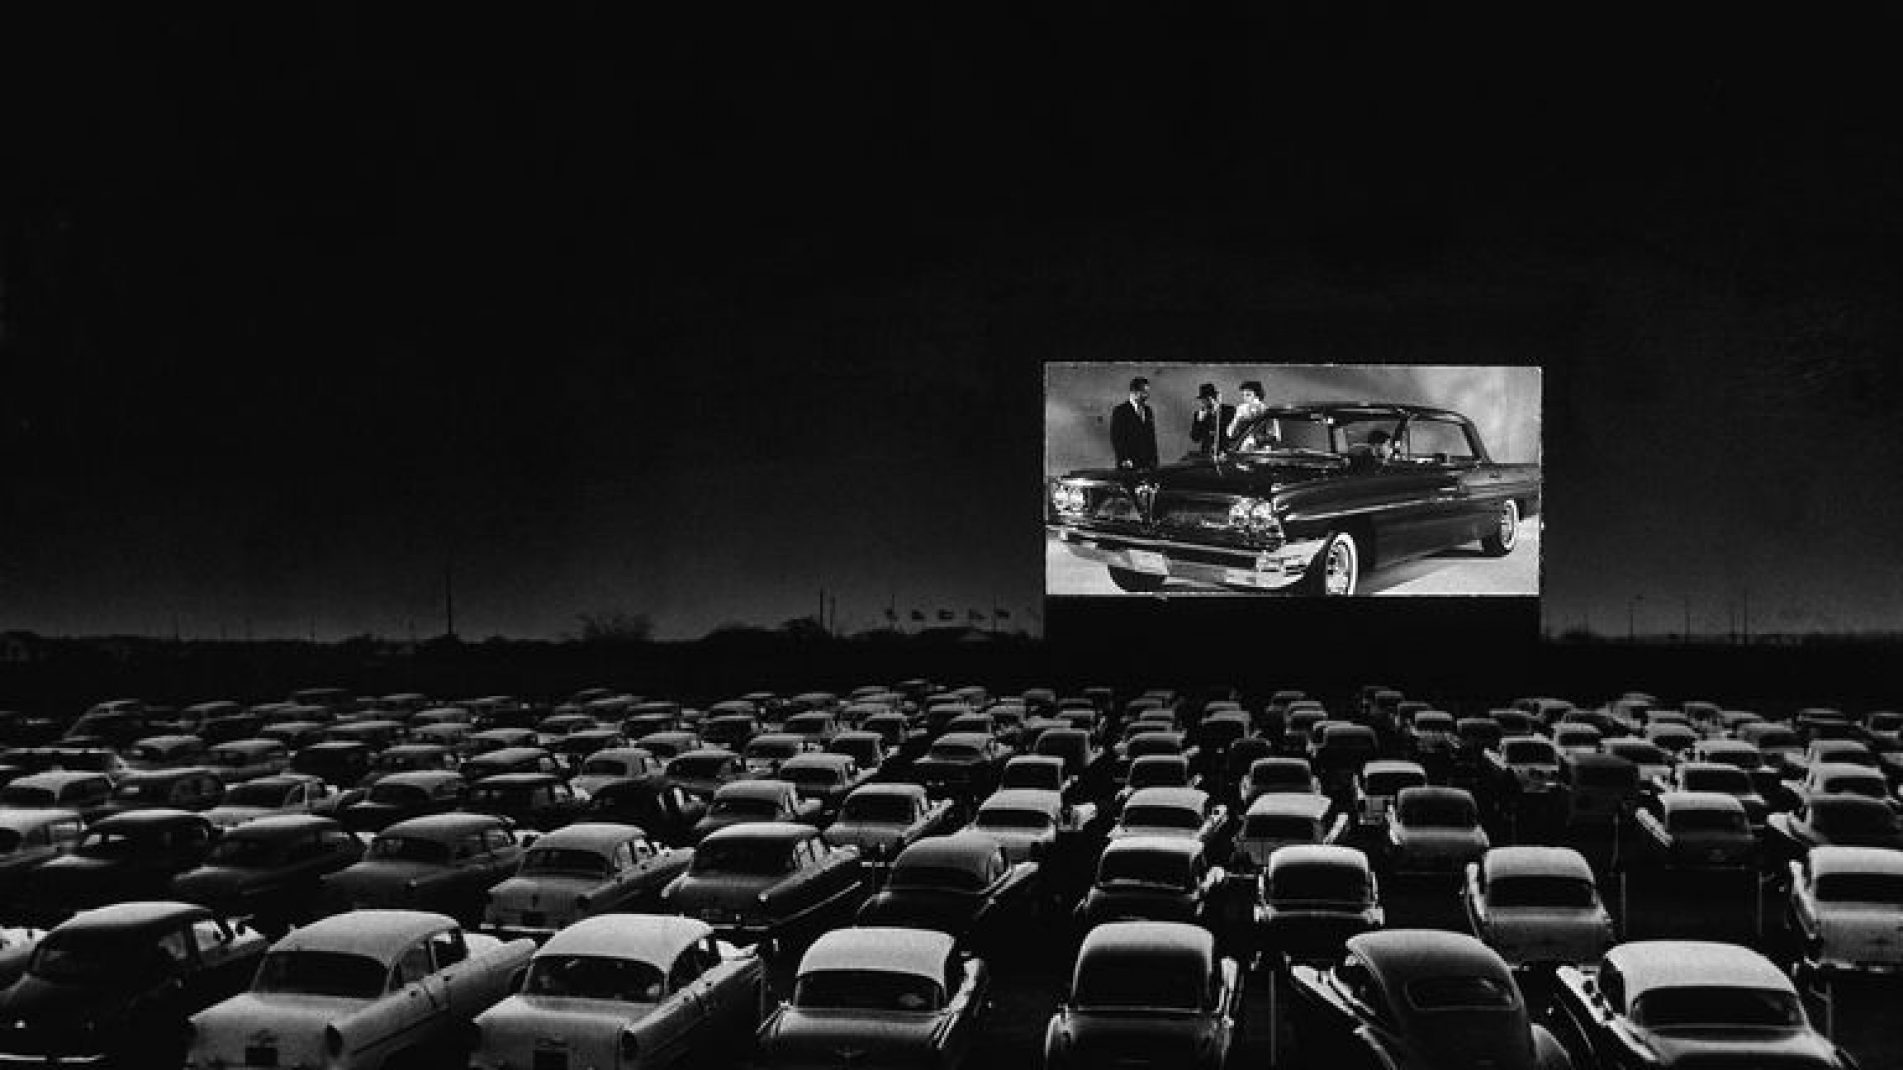 Facebook | Athens Drive-In Cinema